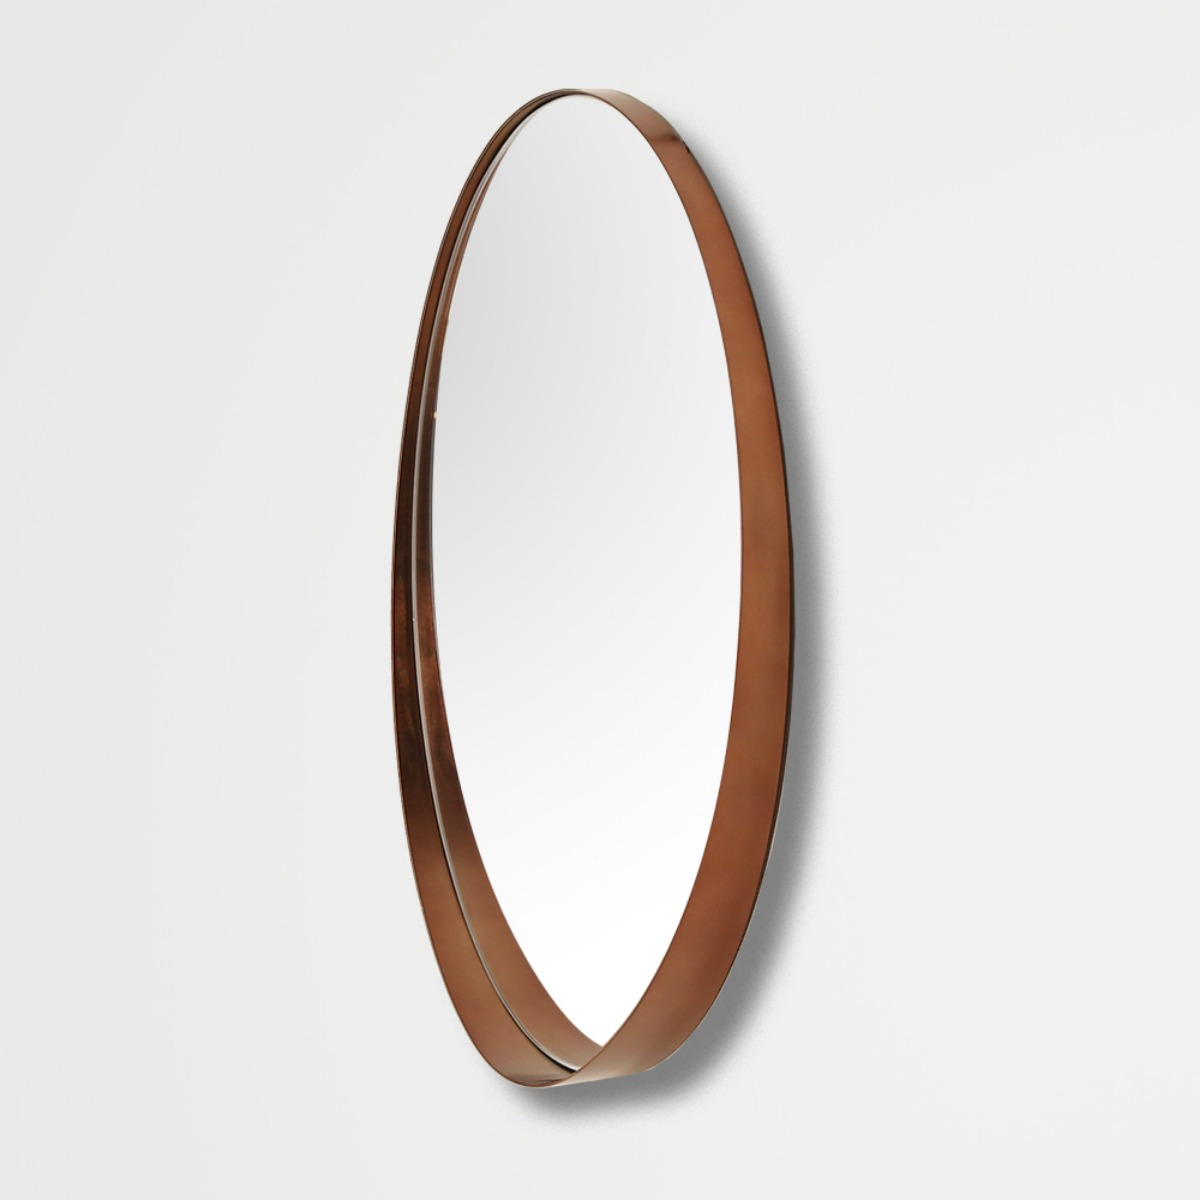 Wall Mirror 4836 (FRO-4836)